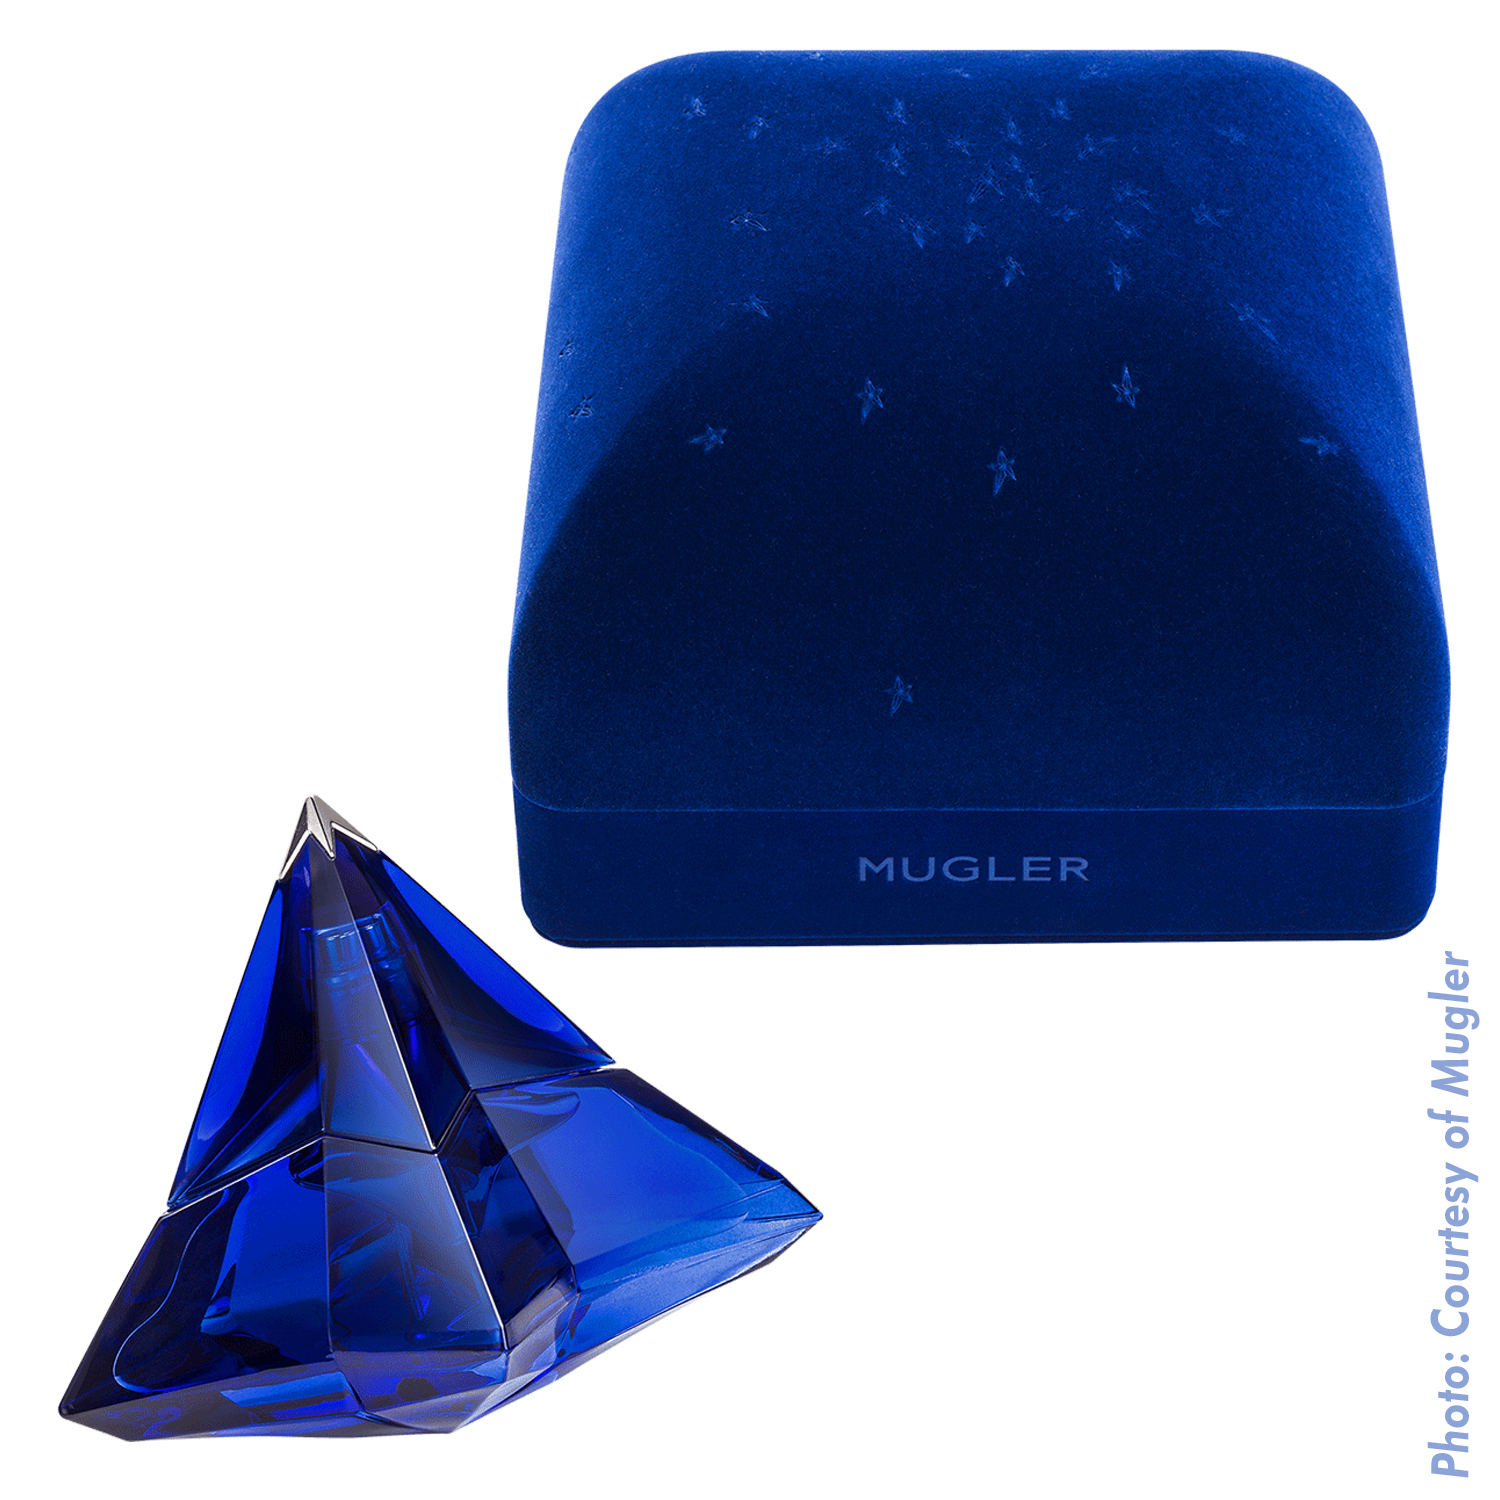 Thierry Mugler Angel Perfume Collector's Limited Edition Bottle 2017 Deep Blue Sapphire Star Velvet Box Closed Hinged Box Pyramid Gravity Star